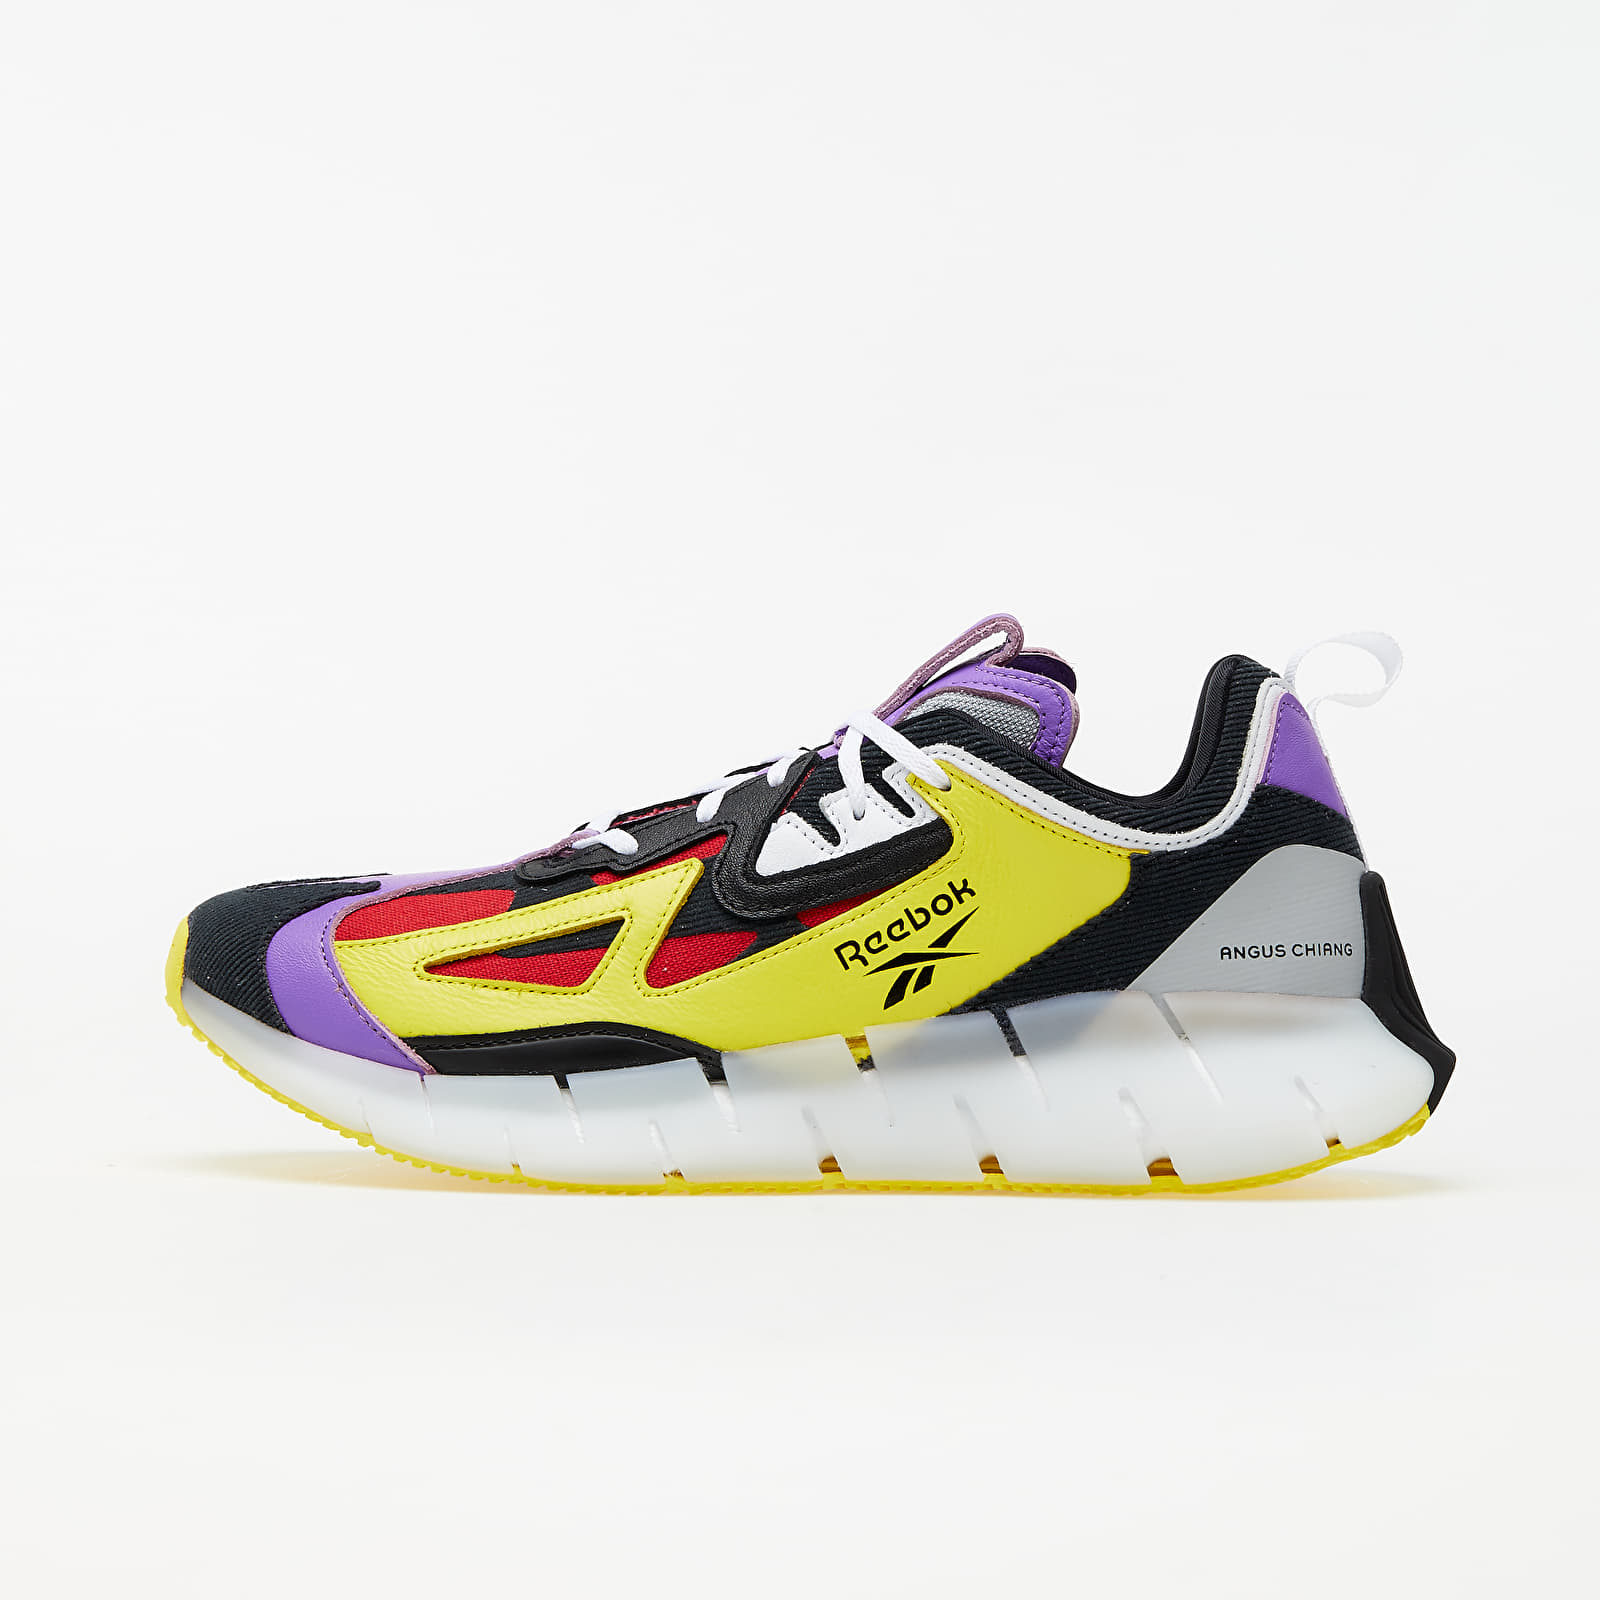 Men's shoes Reebok Zig Kinetica Concept Pigment Purple/ Bright Yellow/ Black